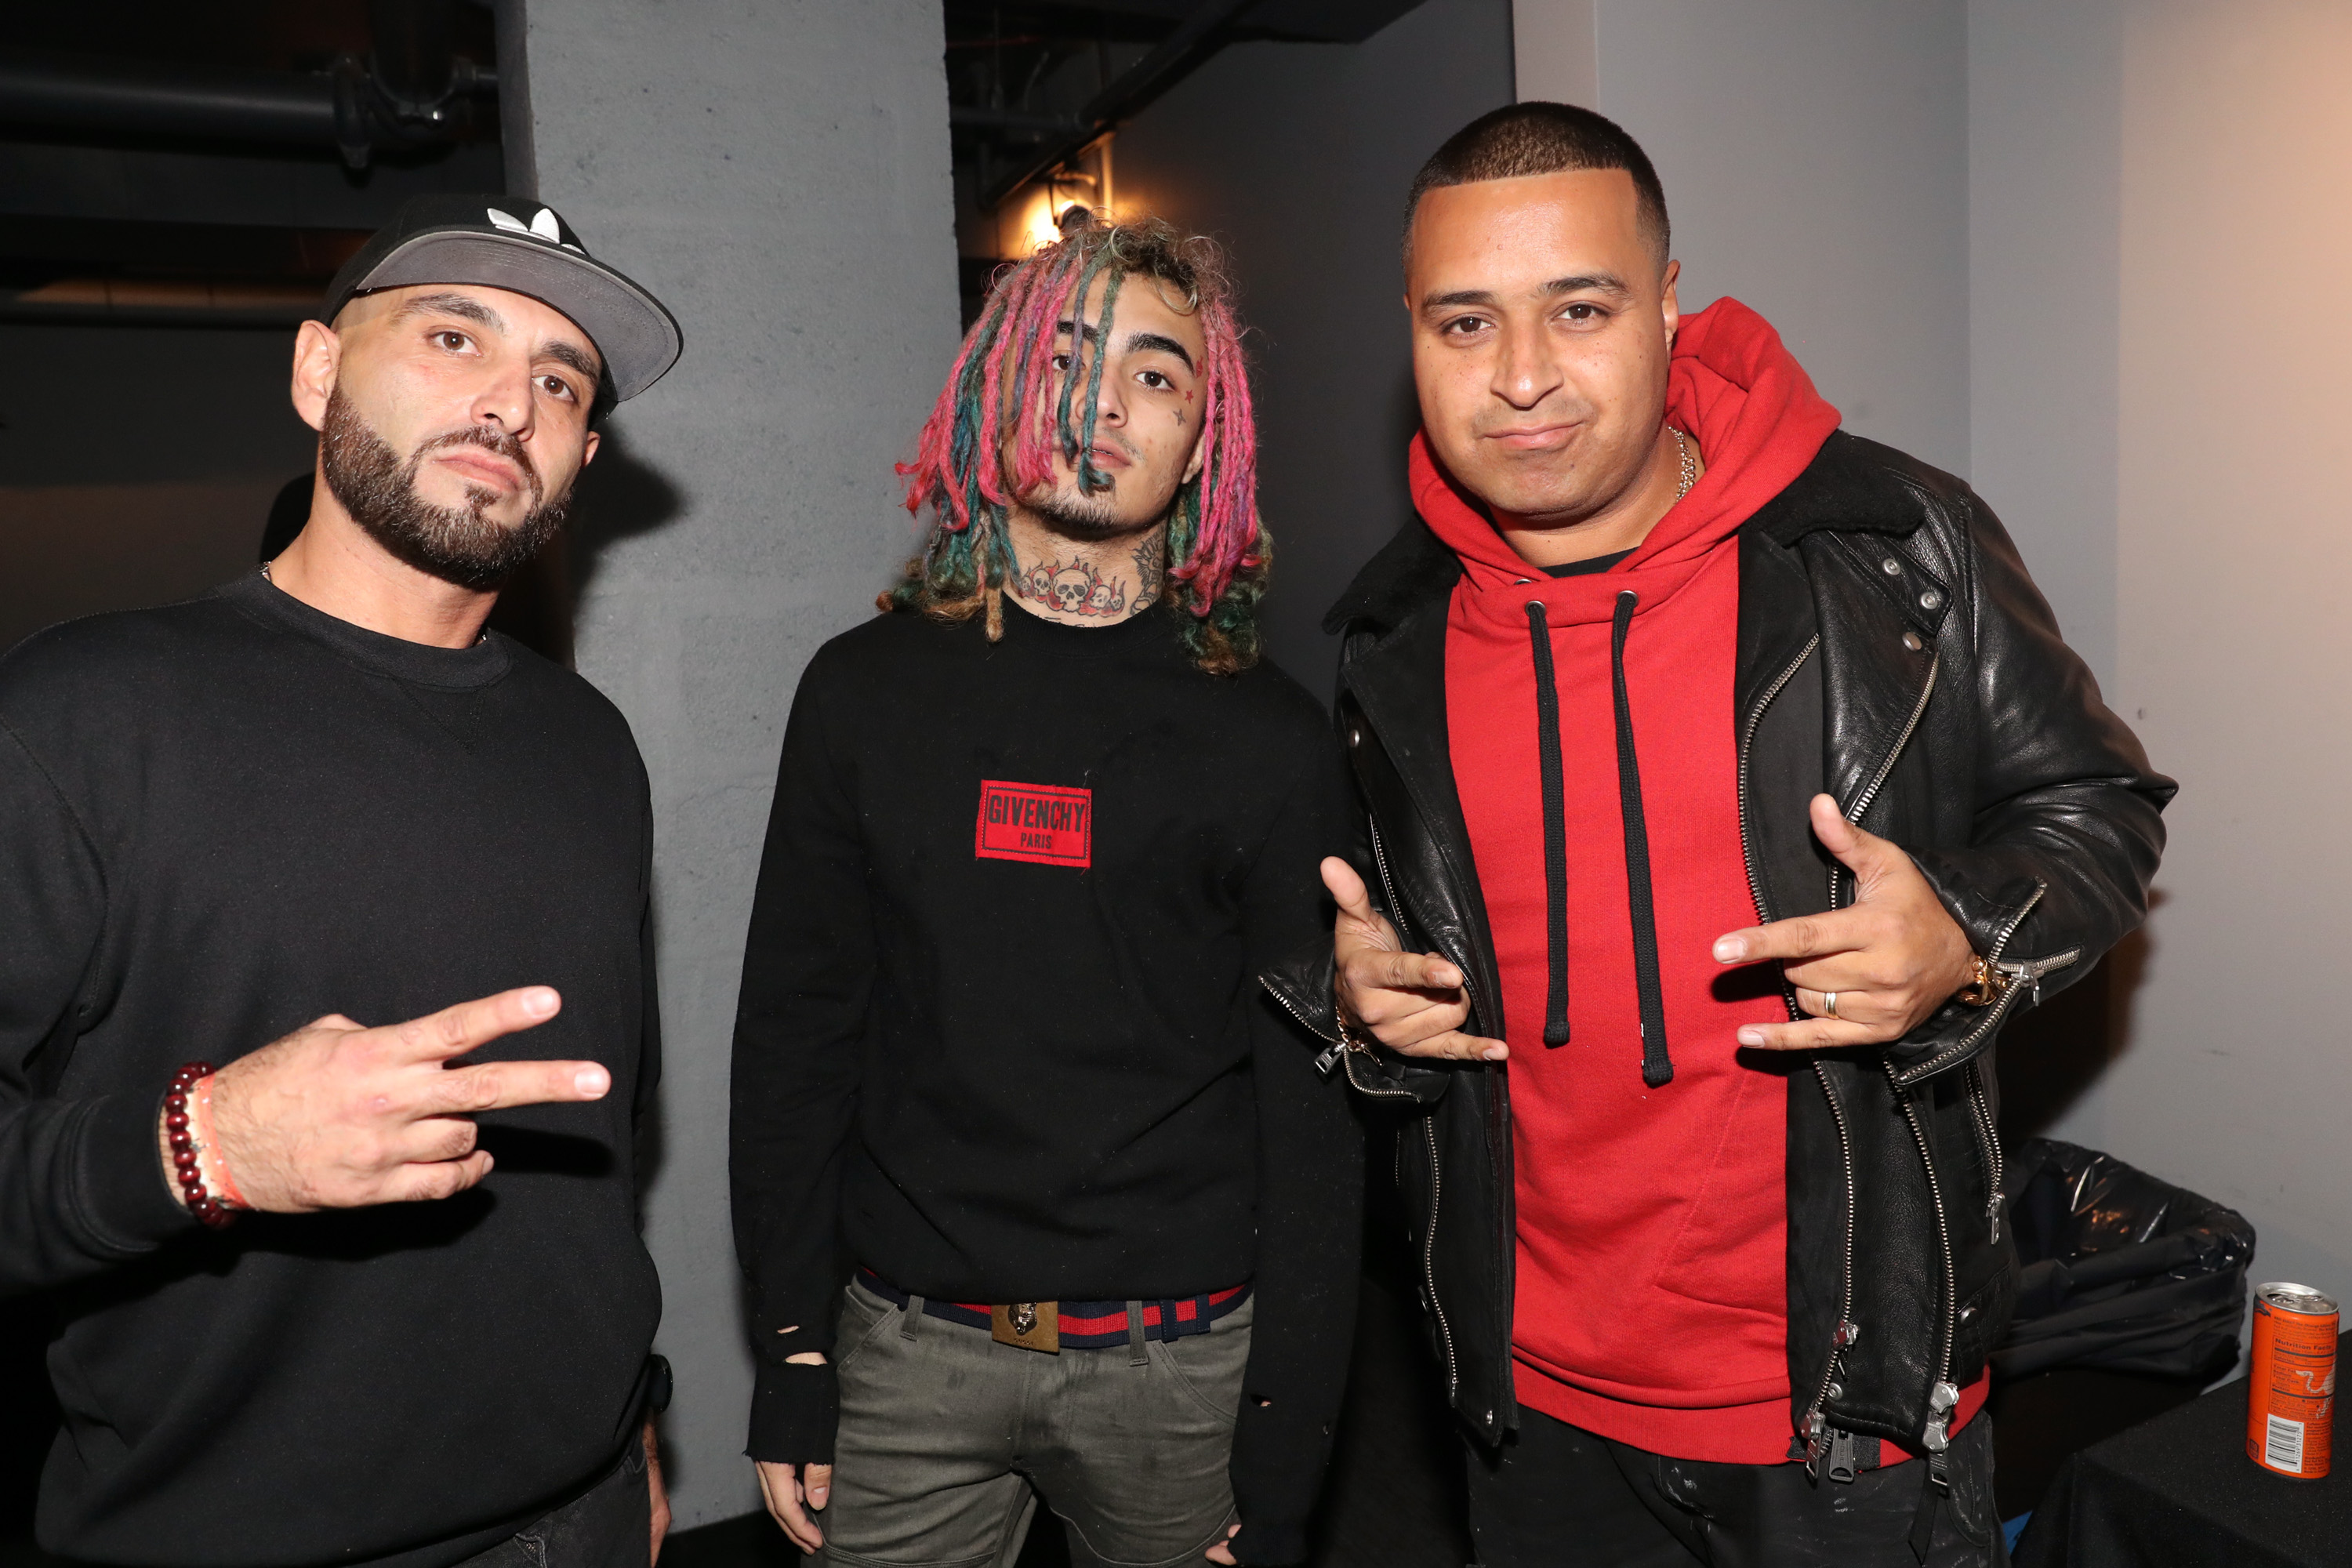 Lil Pump In Concert - New York, NY